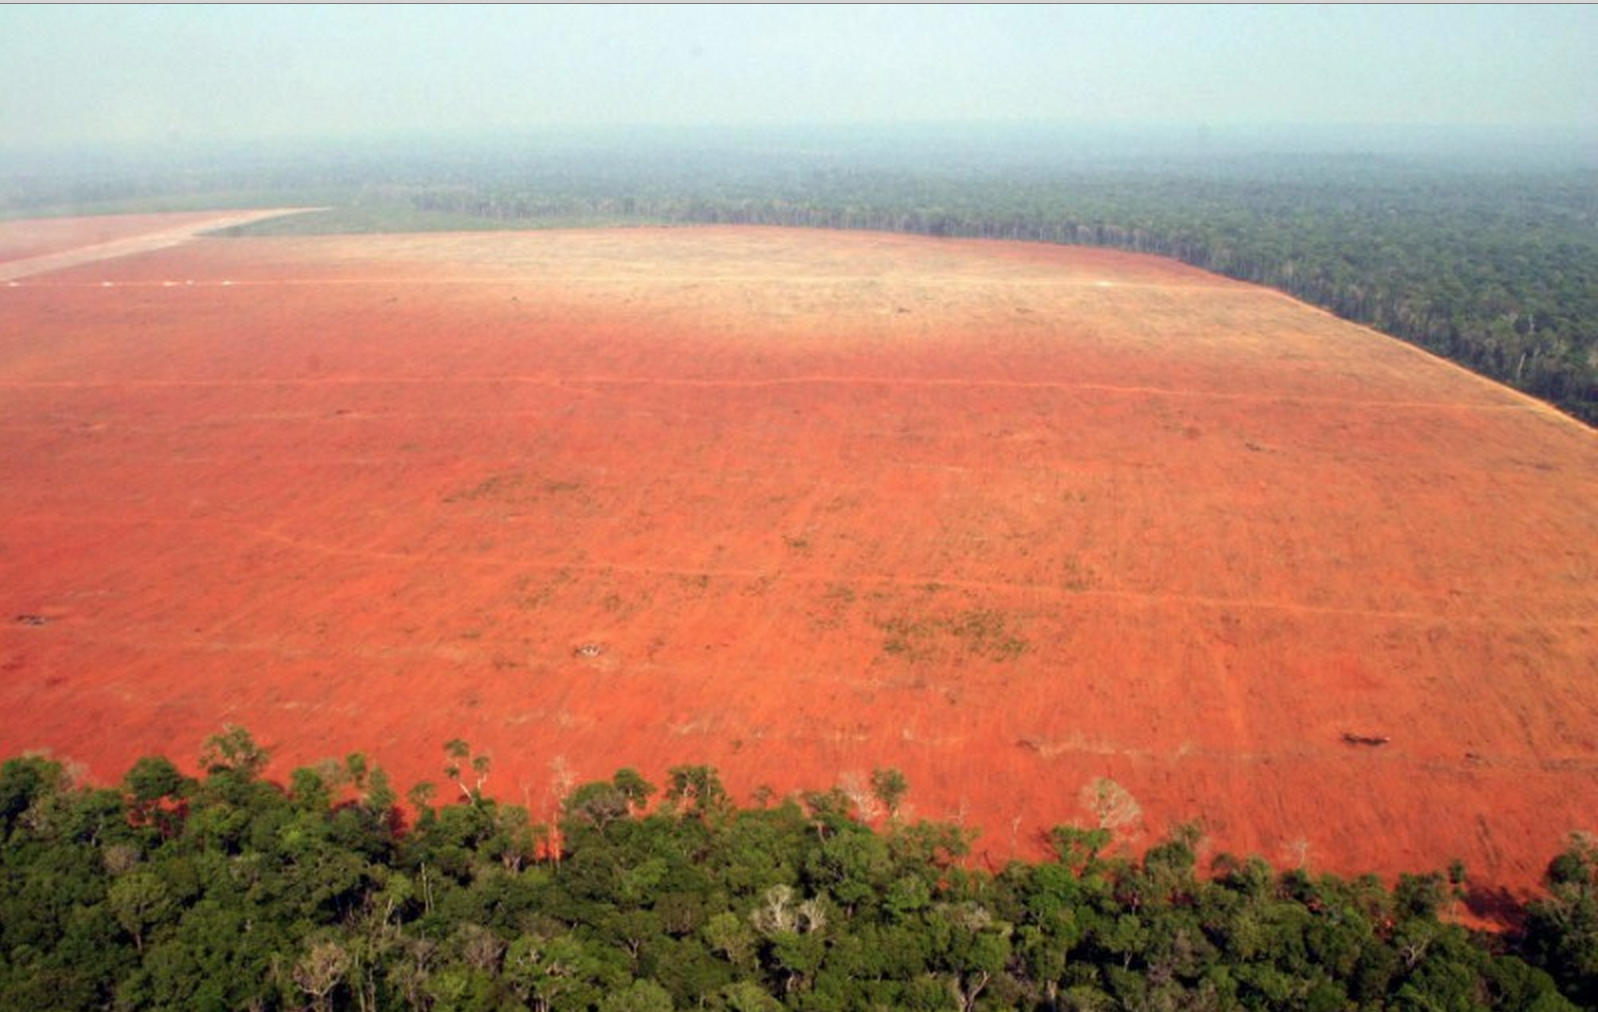 environment essay the devastation of deforestation This free environmental studies essay on deforestation is the permanent devastation of native forests and cheapest essay service: essays about deforestation.